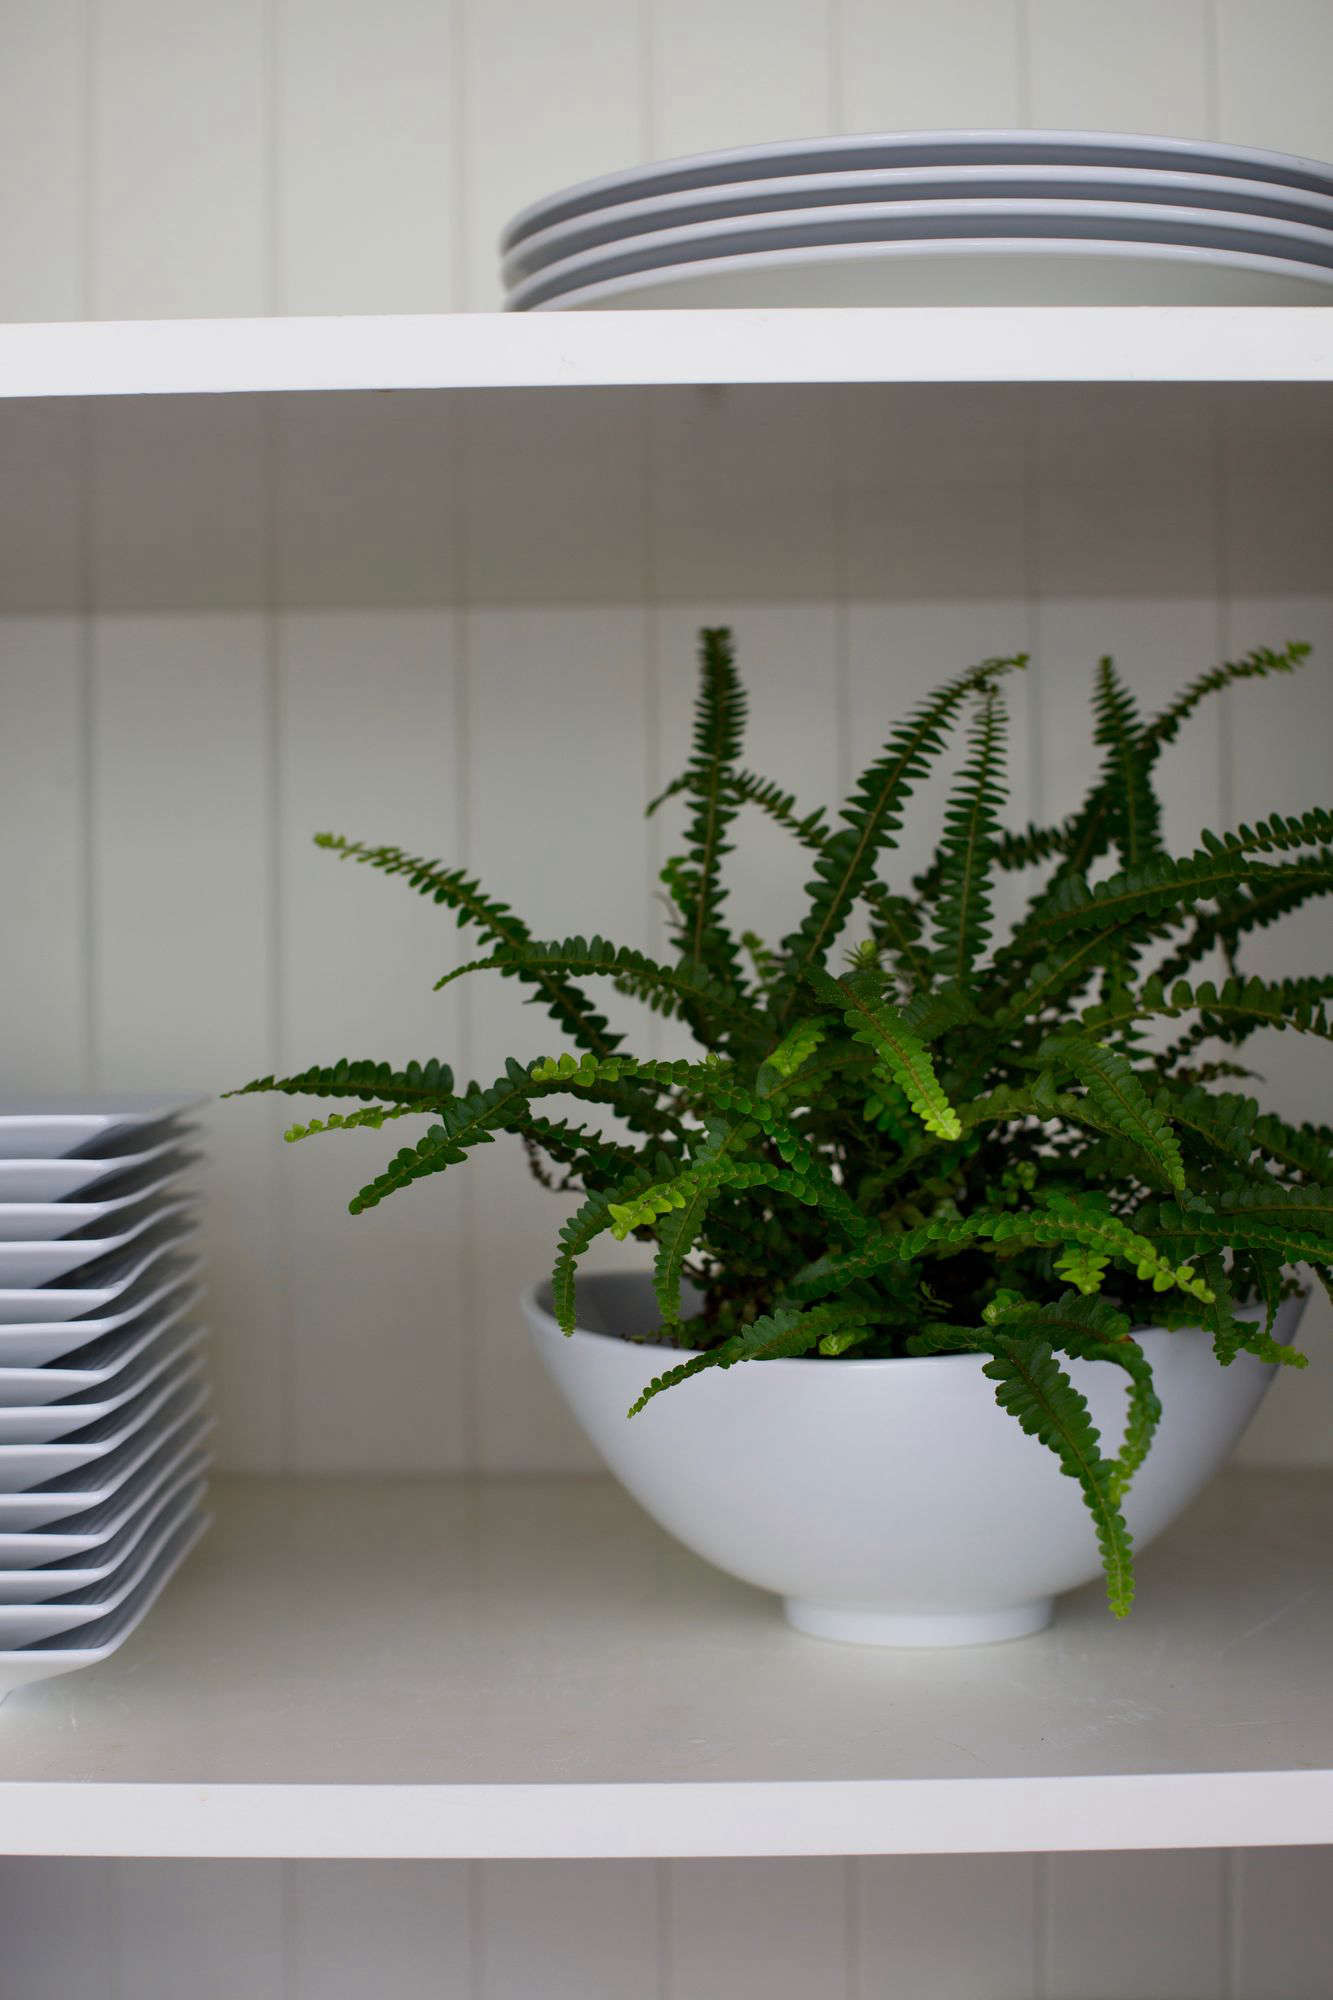 A Lemon Button Fern in a 4-inch pot is $7.99 from 9Greenbox. & Best Houseplants: 9 Indoor Plants for Low Light - Gardenista